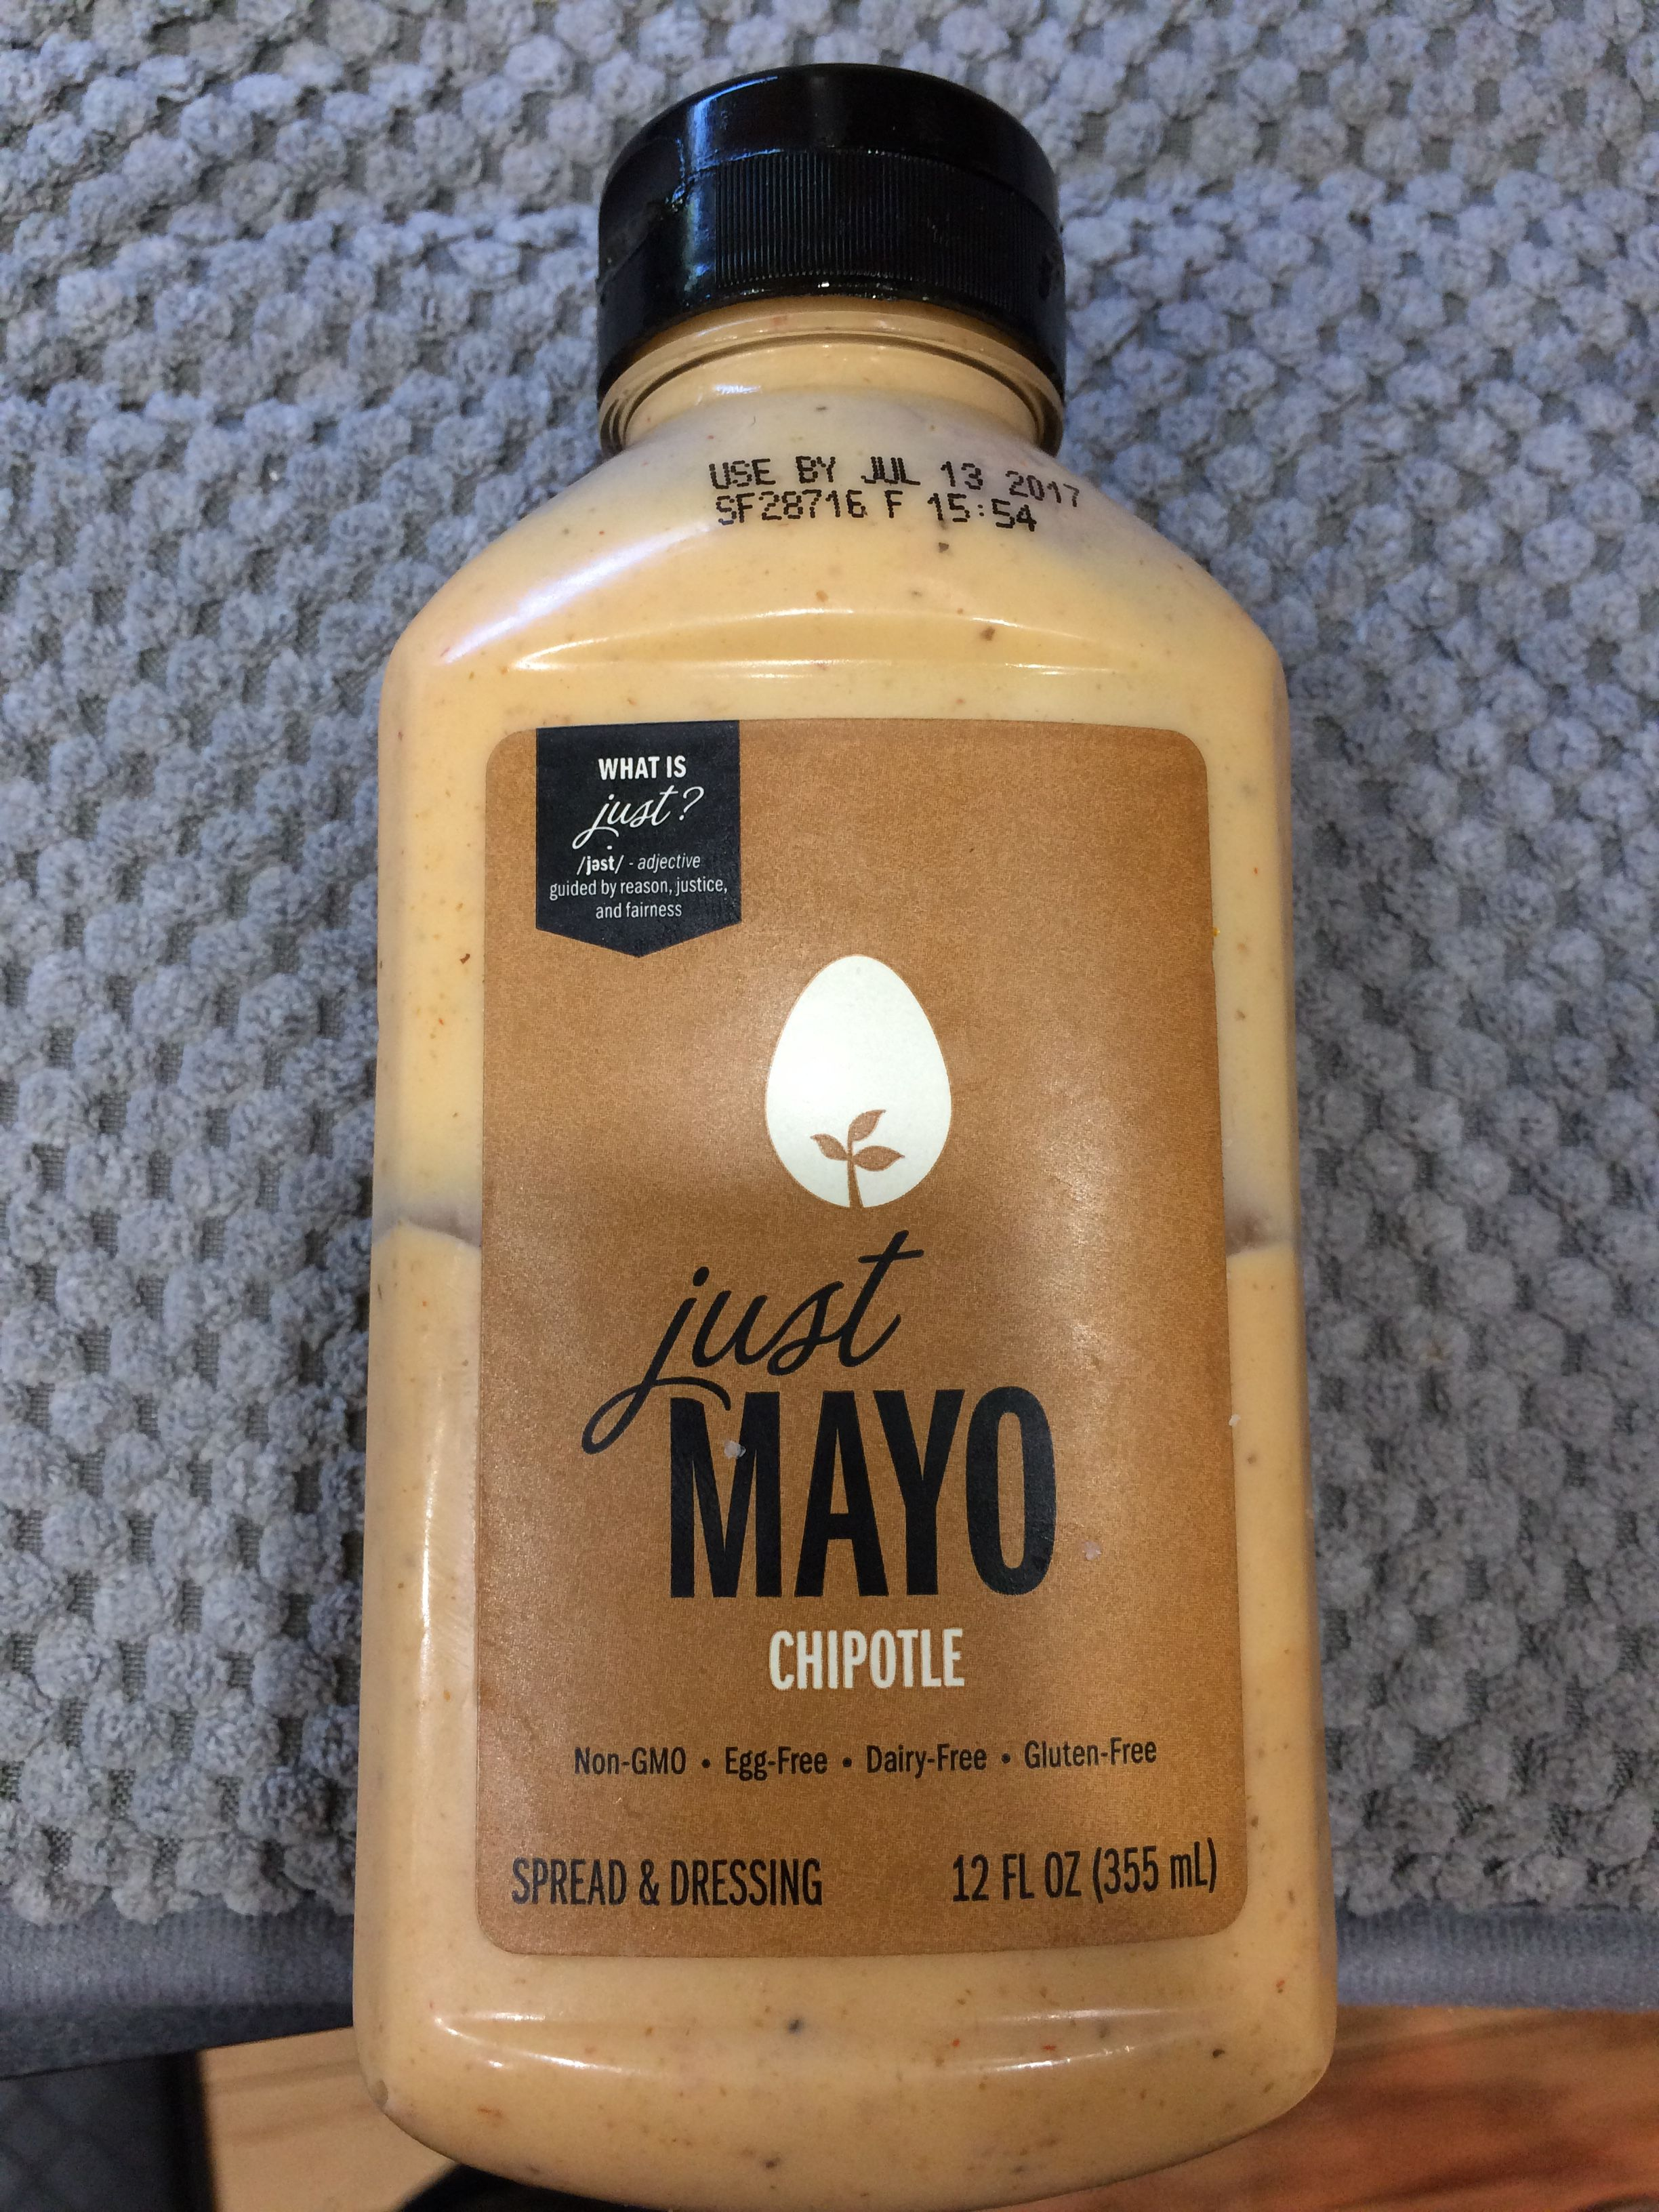 Soy and egg free mayo. The chipotle flavor is the best